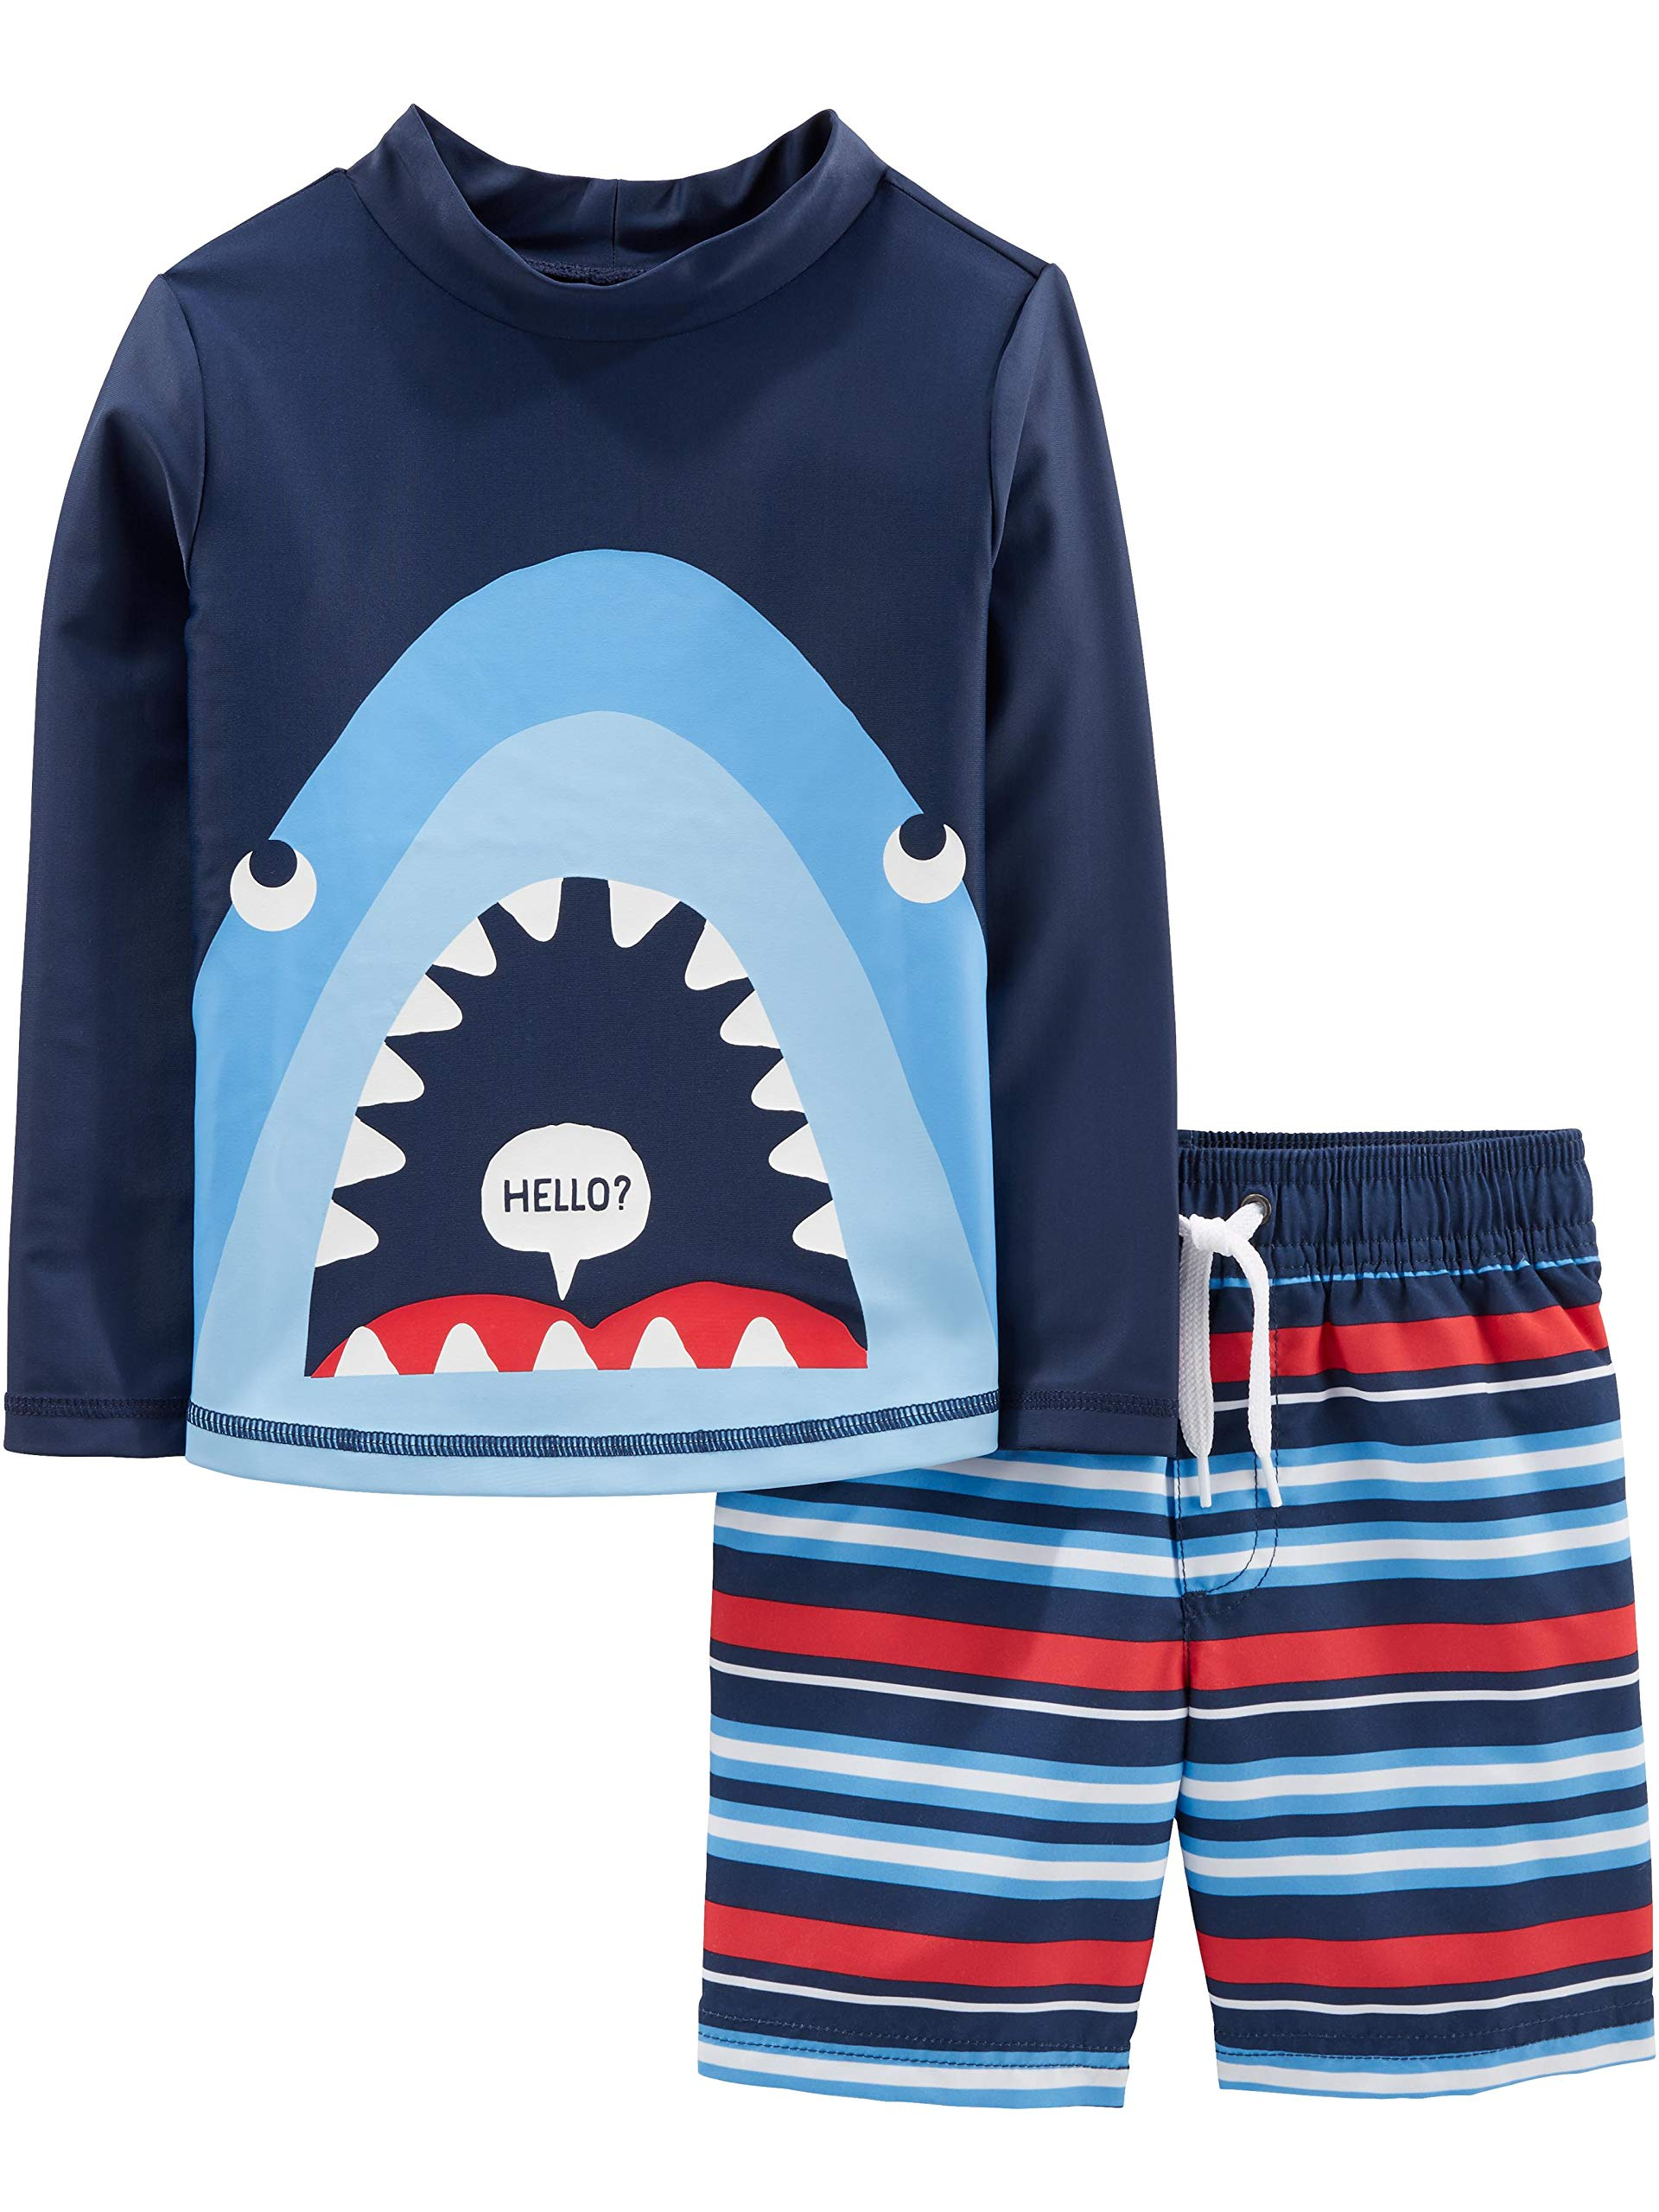 13520ccd94 Simple Joys by Carter's Baby and Toddler Boys' 2-Piece Swimsuit Trunk and  Rashguard